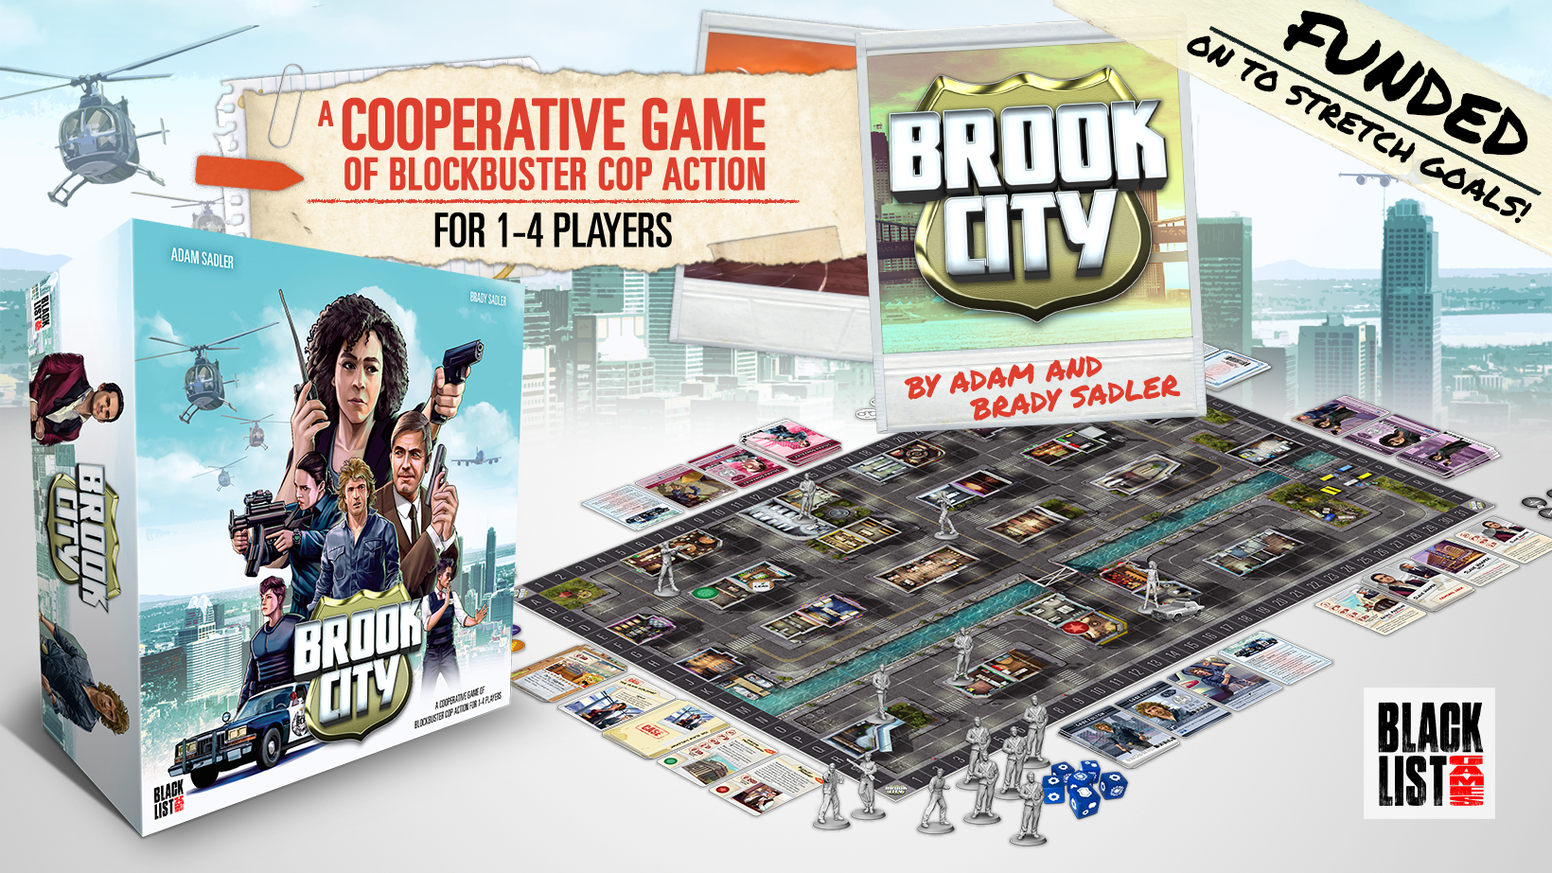 A cooperative board game where 1-4 players take on the roles of heroic cops inspired by classic action movies.